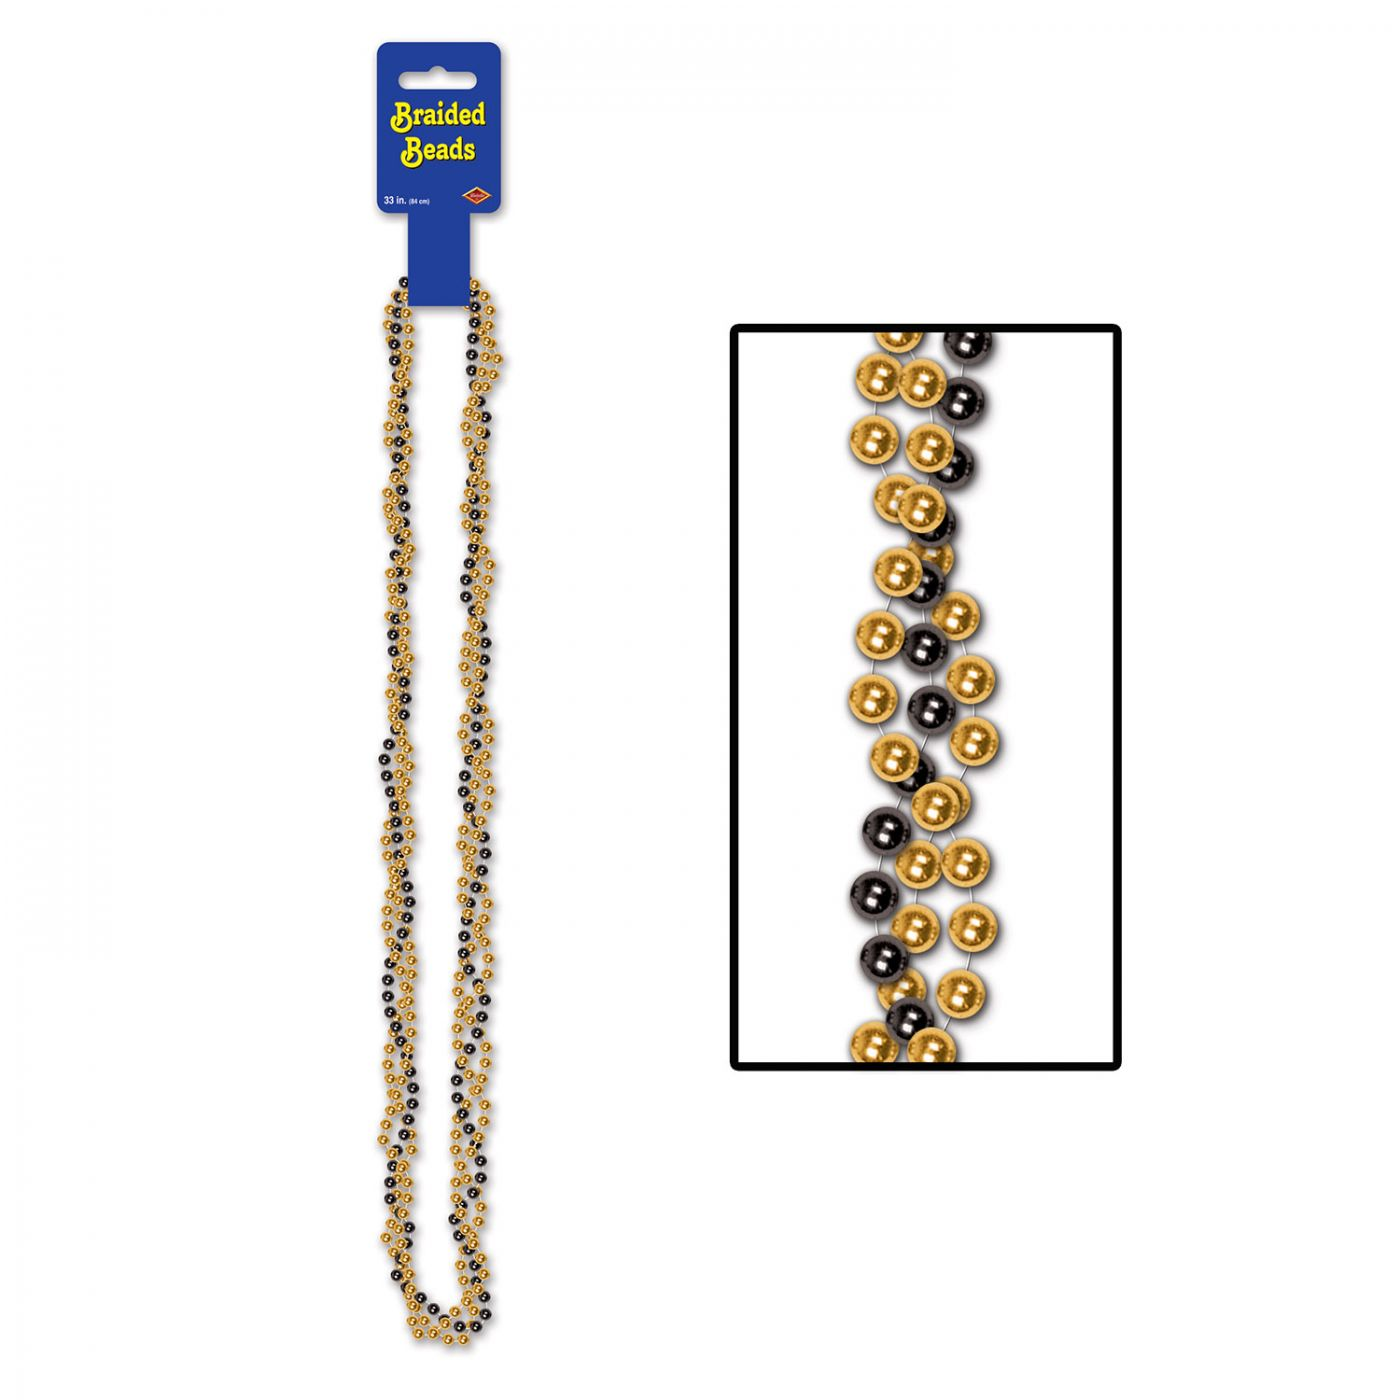 Braided Beads image